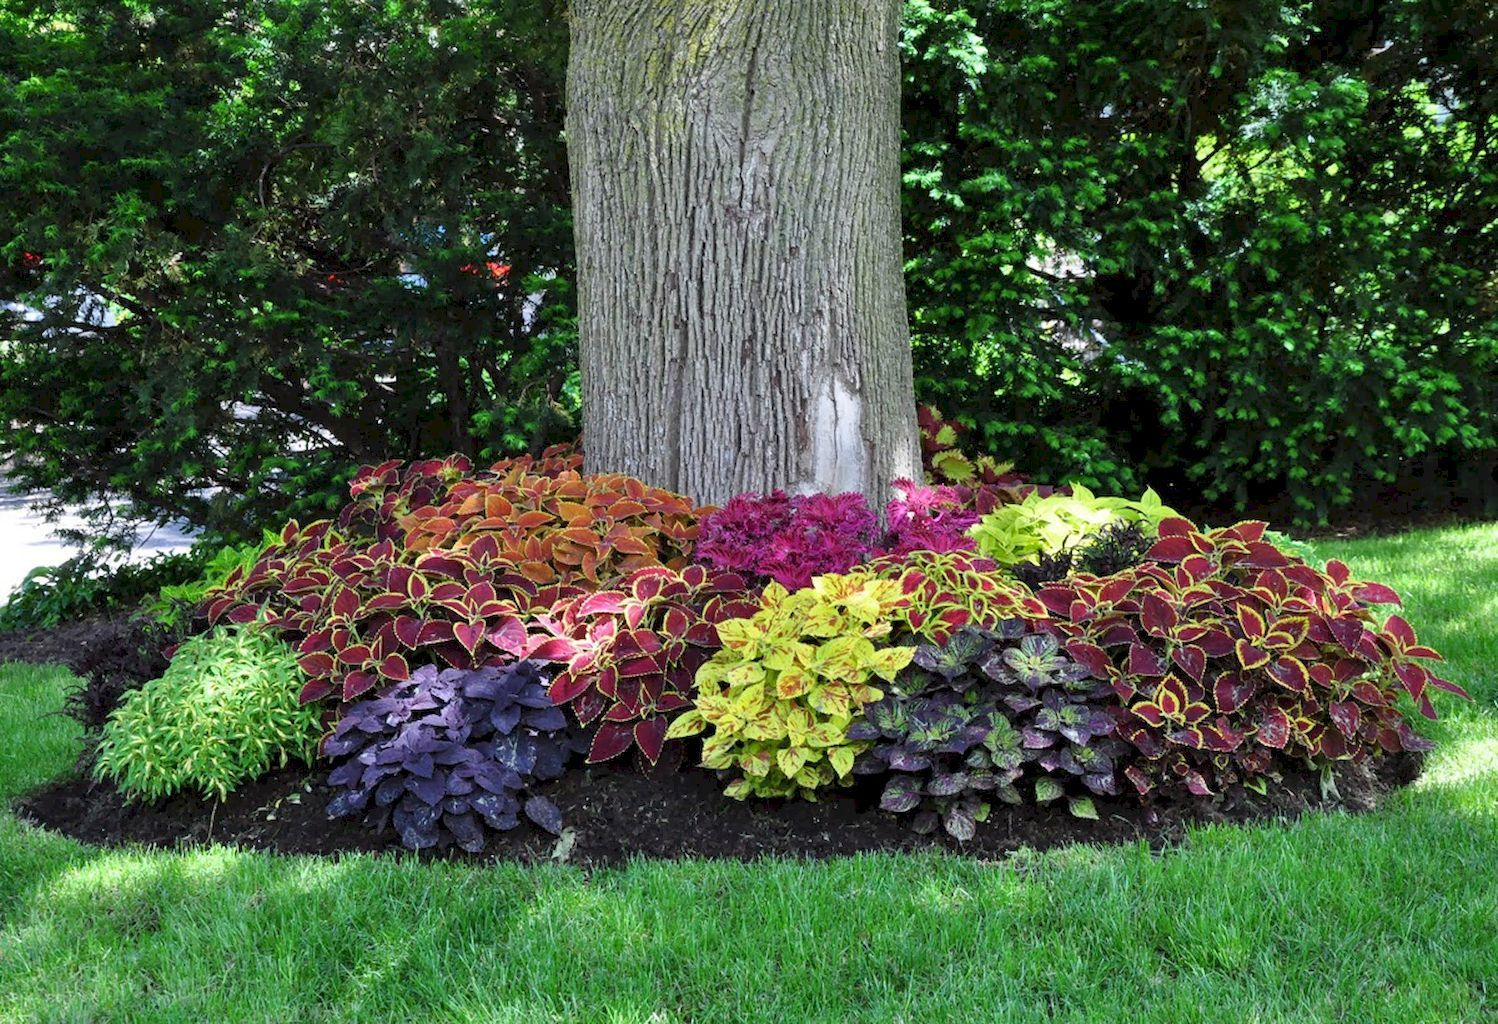 Cheap Landscaping Ideas For Your Front Yard That Will Inspire You 6 Lovelyving Landscaping Around Trees Shade Plants Cheap Landscaping Ideas